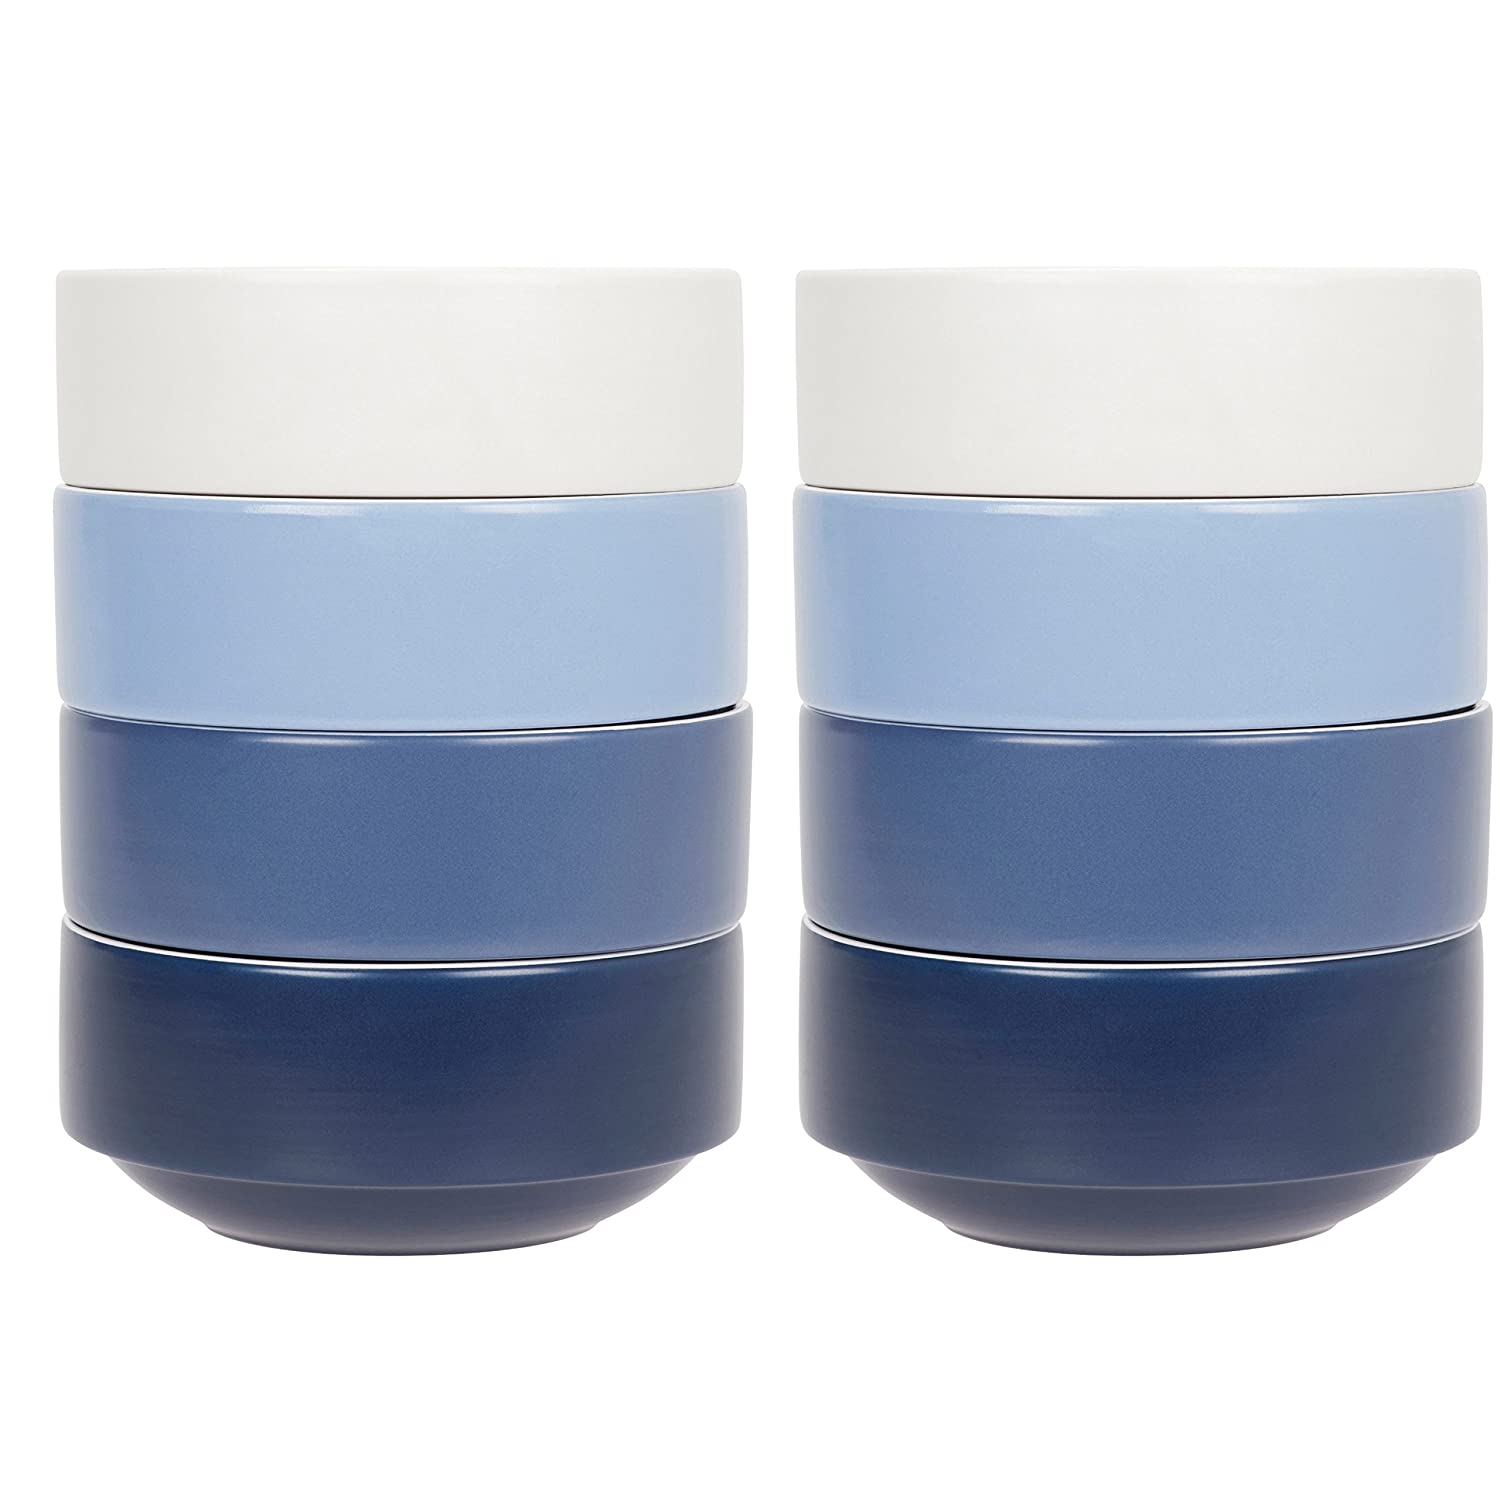 Compact Living Dinnerware - Set of 8 Stackable Bowls - 2 White, 2 Light Blue, 2 Mid and 2 Dark Blue - - 15.2 cm / 6 in